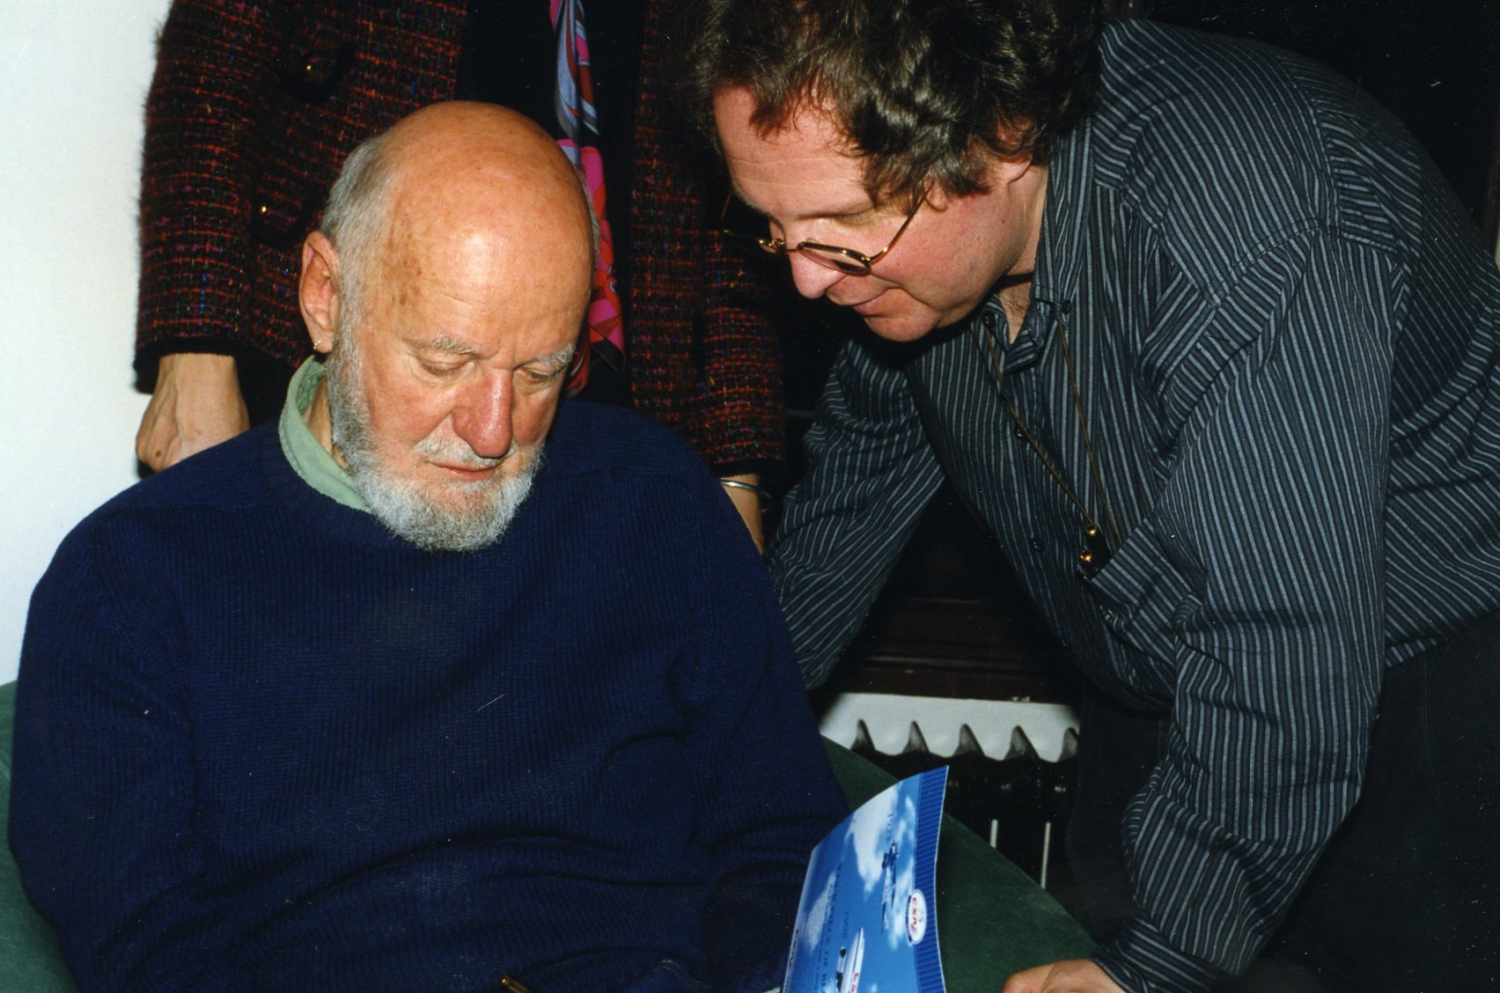 L. Ferlinghetti a M. March